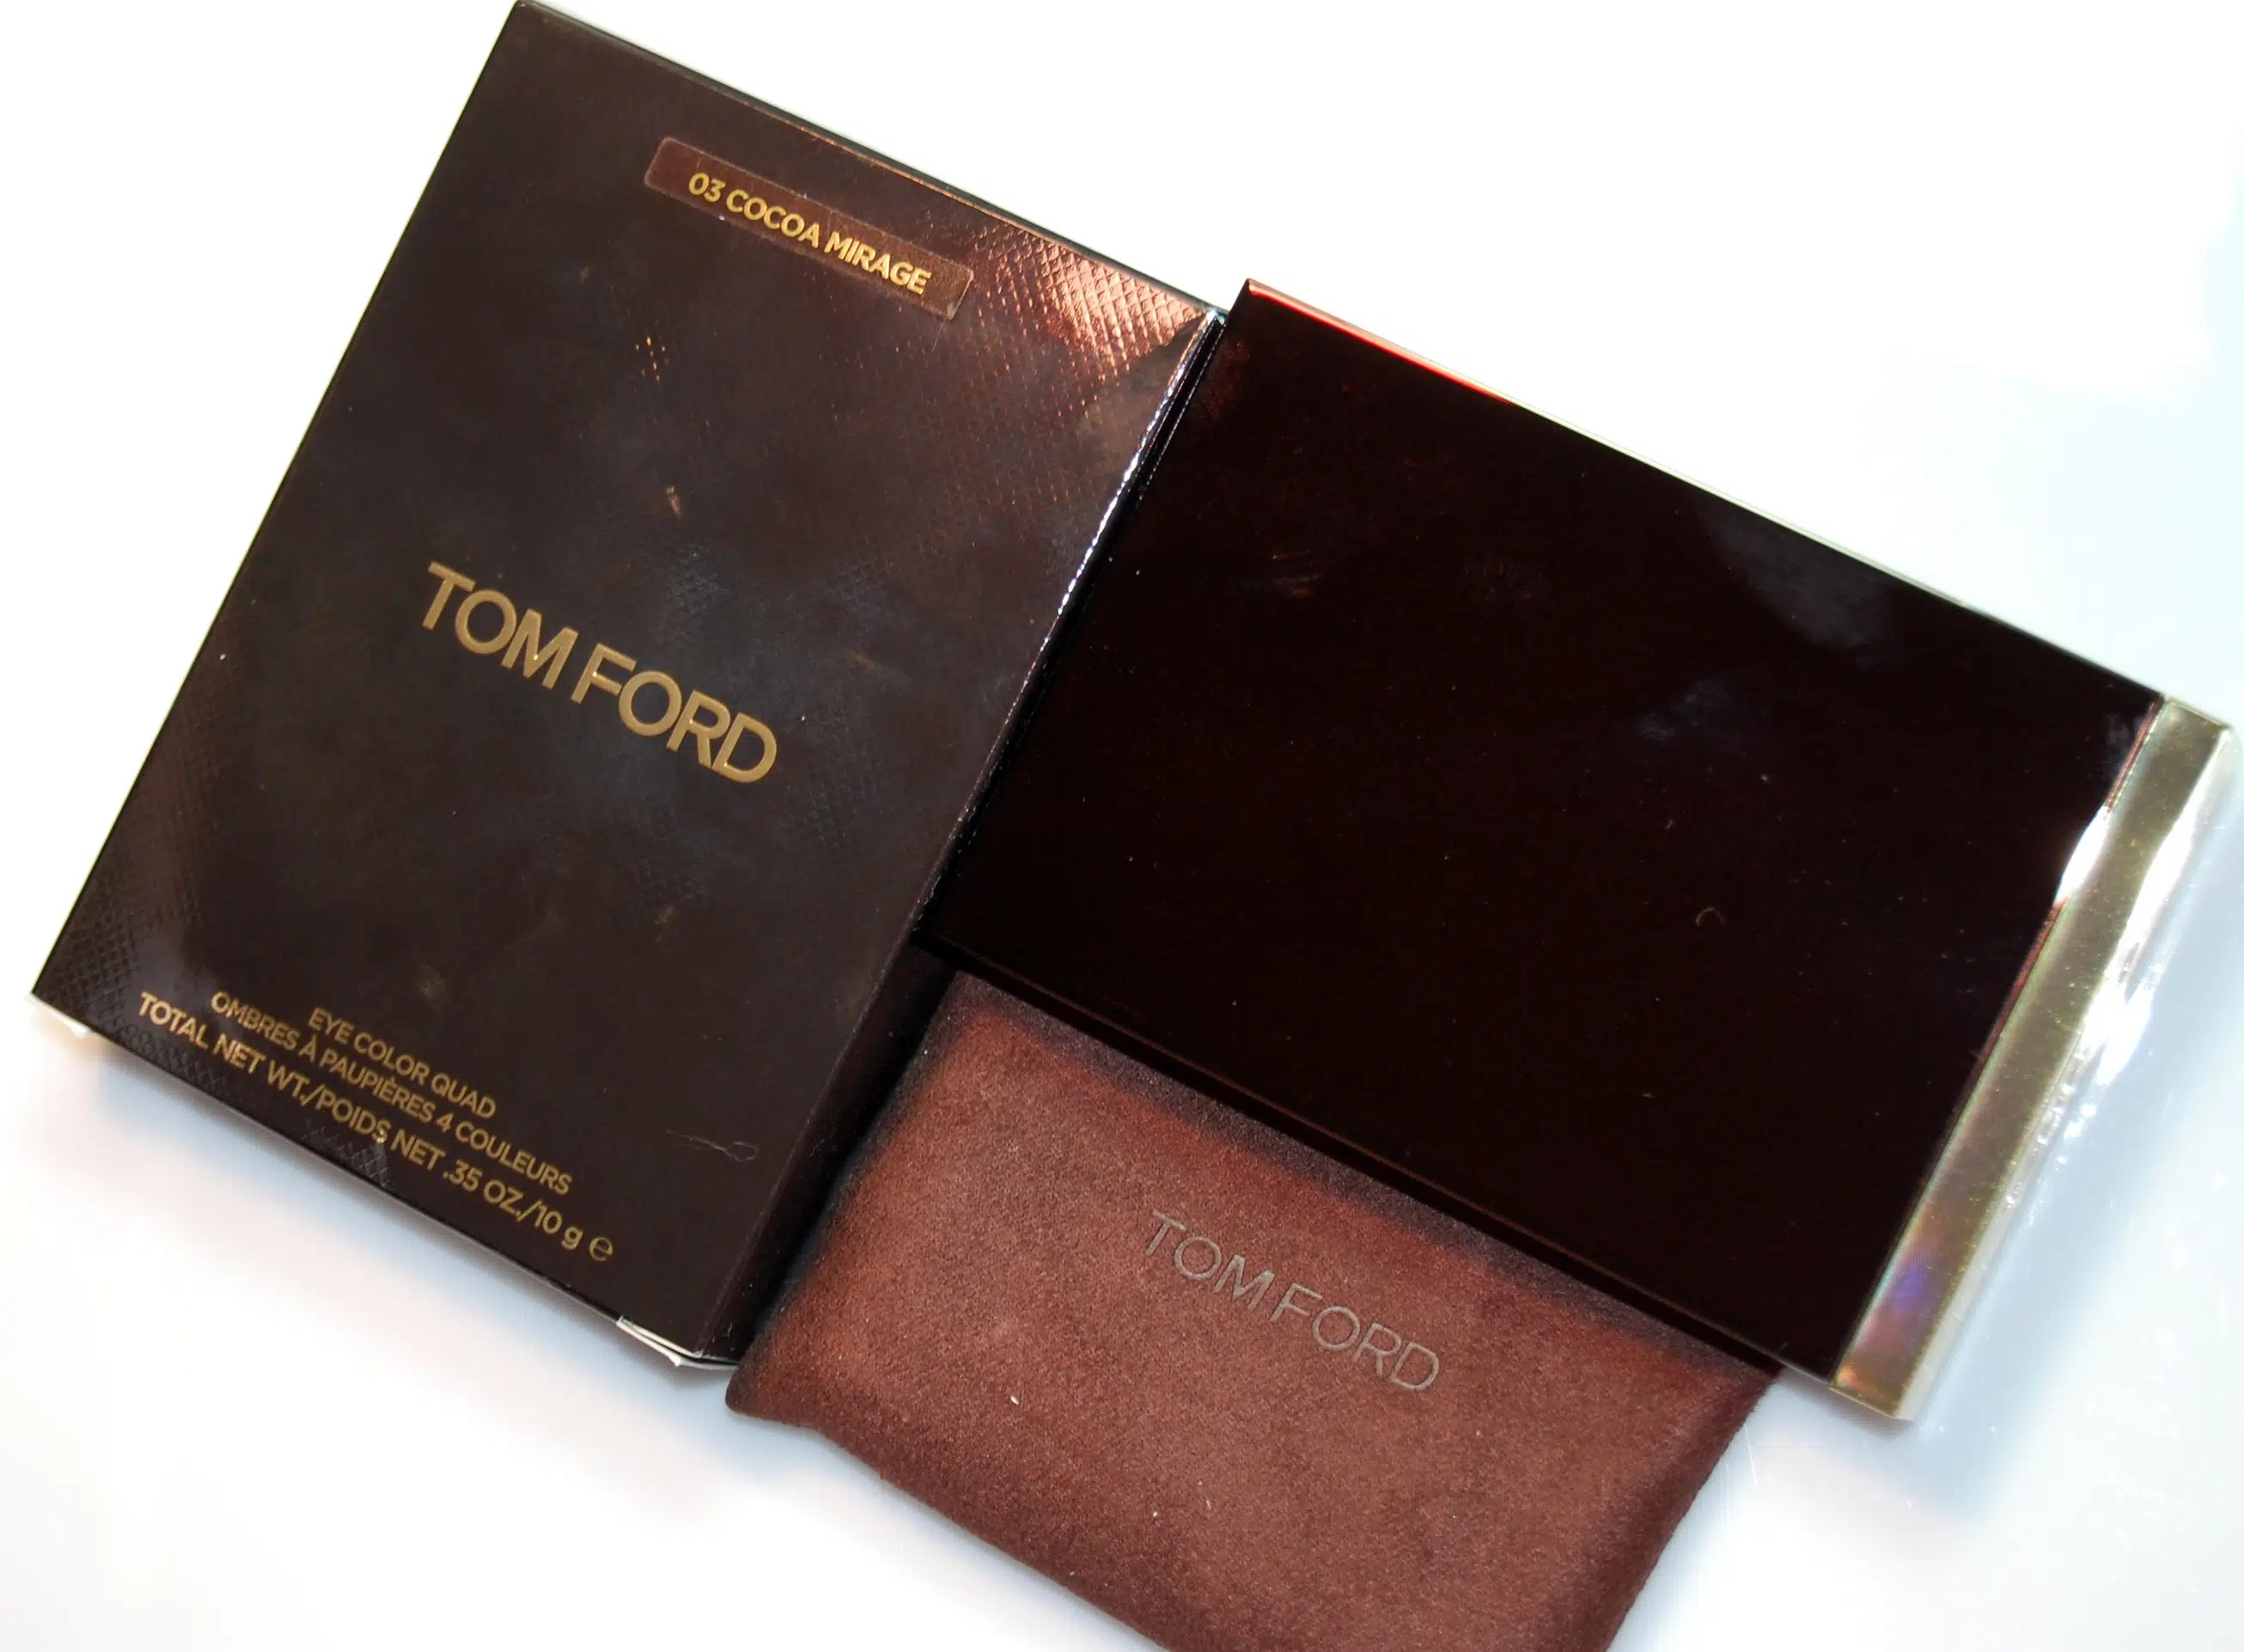 Tom Ford Cocoa Mirage Eye Color Quad Review Ingredients Swatches